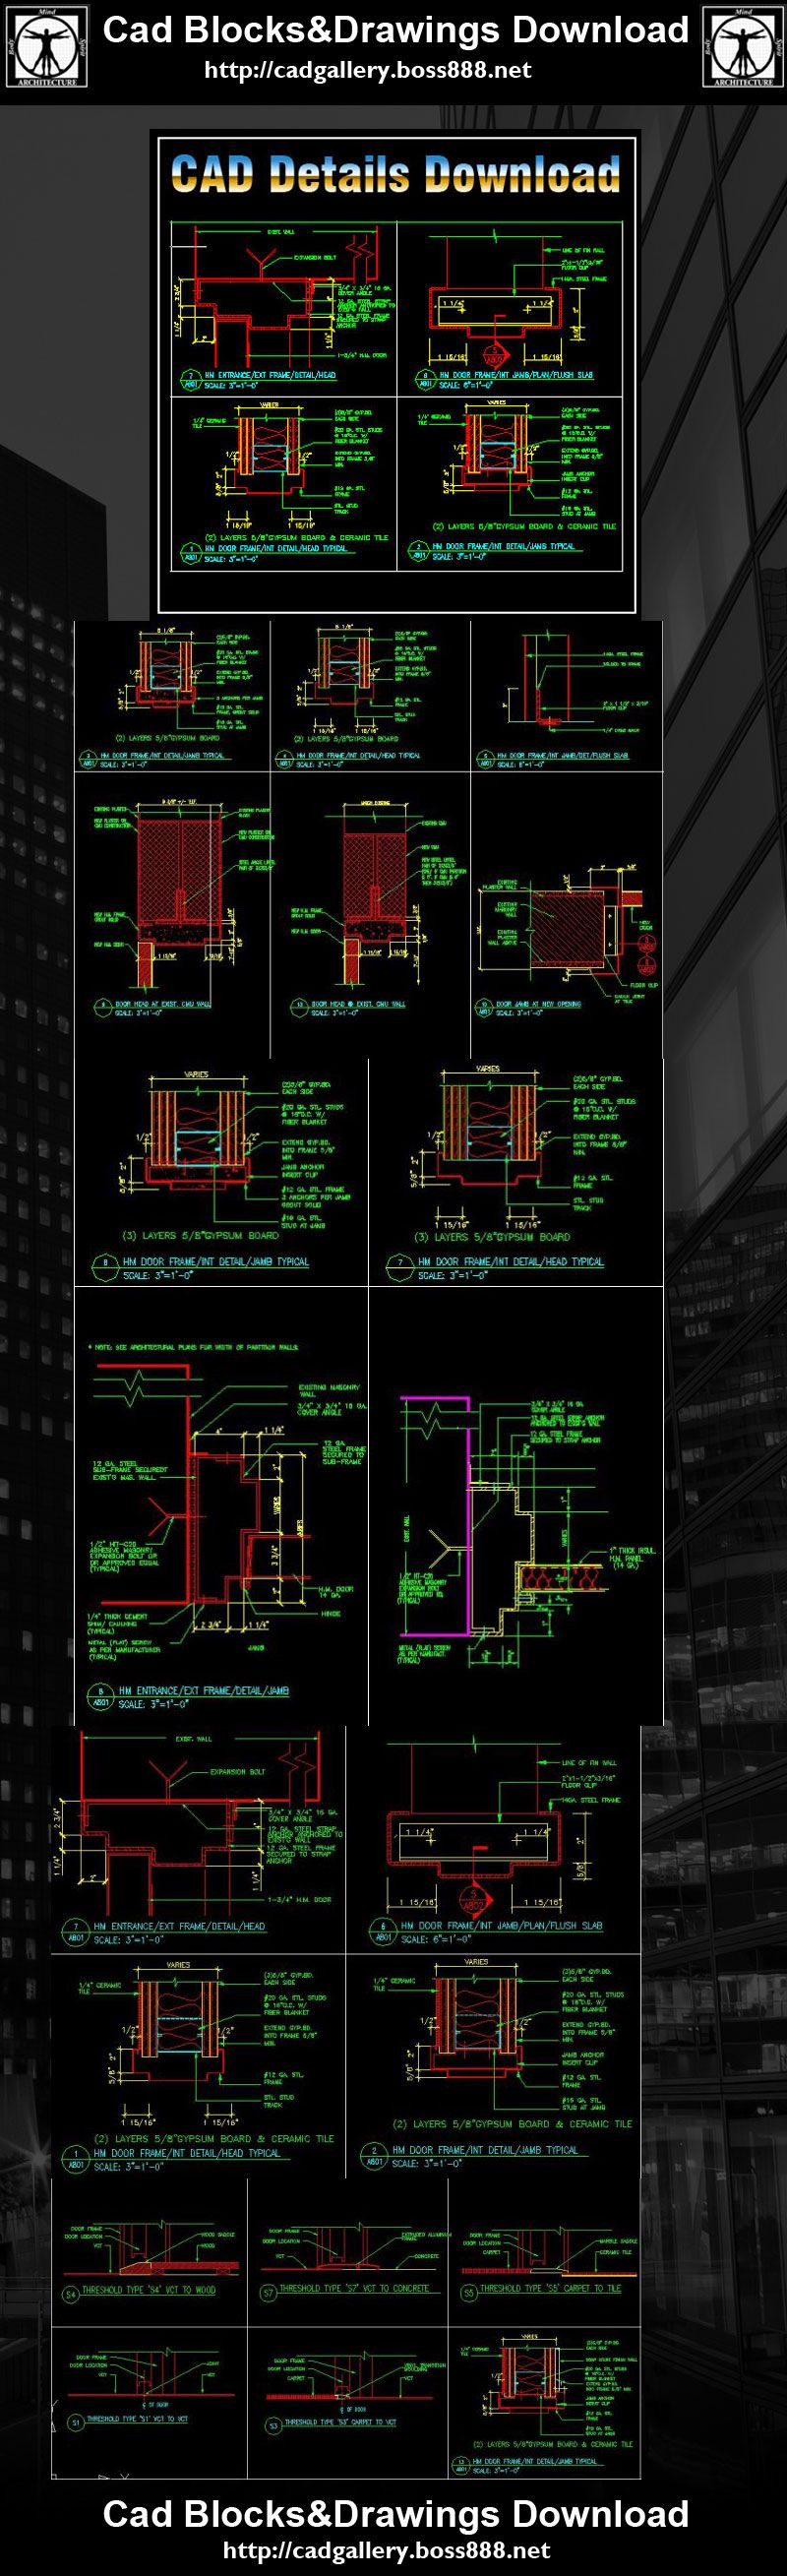 Lighting symbols cad drawings download httpboss888 lighting symbols cad drawings download httpboss888autocadshop4 cad drawing download pinterest cad drawing and autocad biocorpaavc Image collections